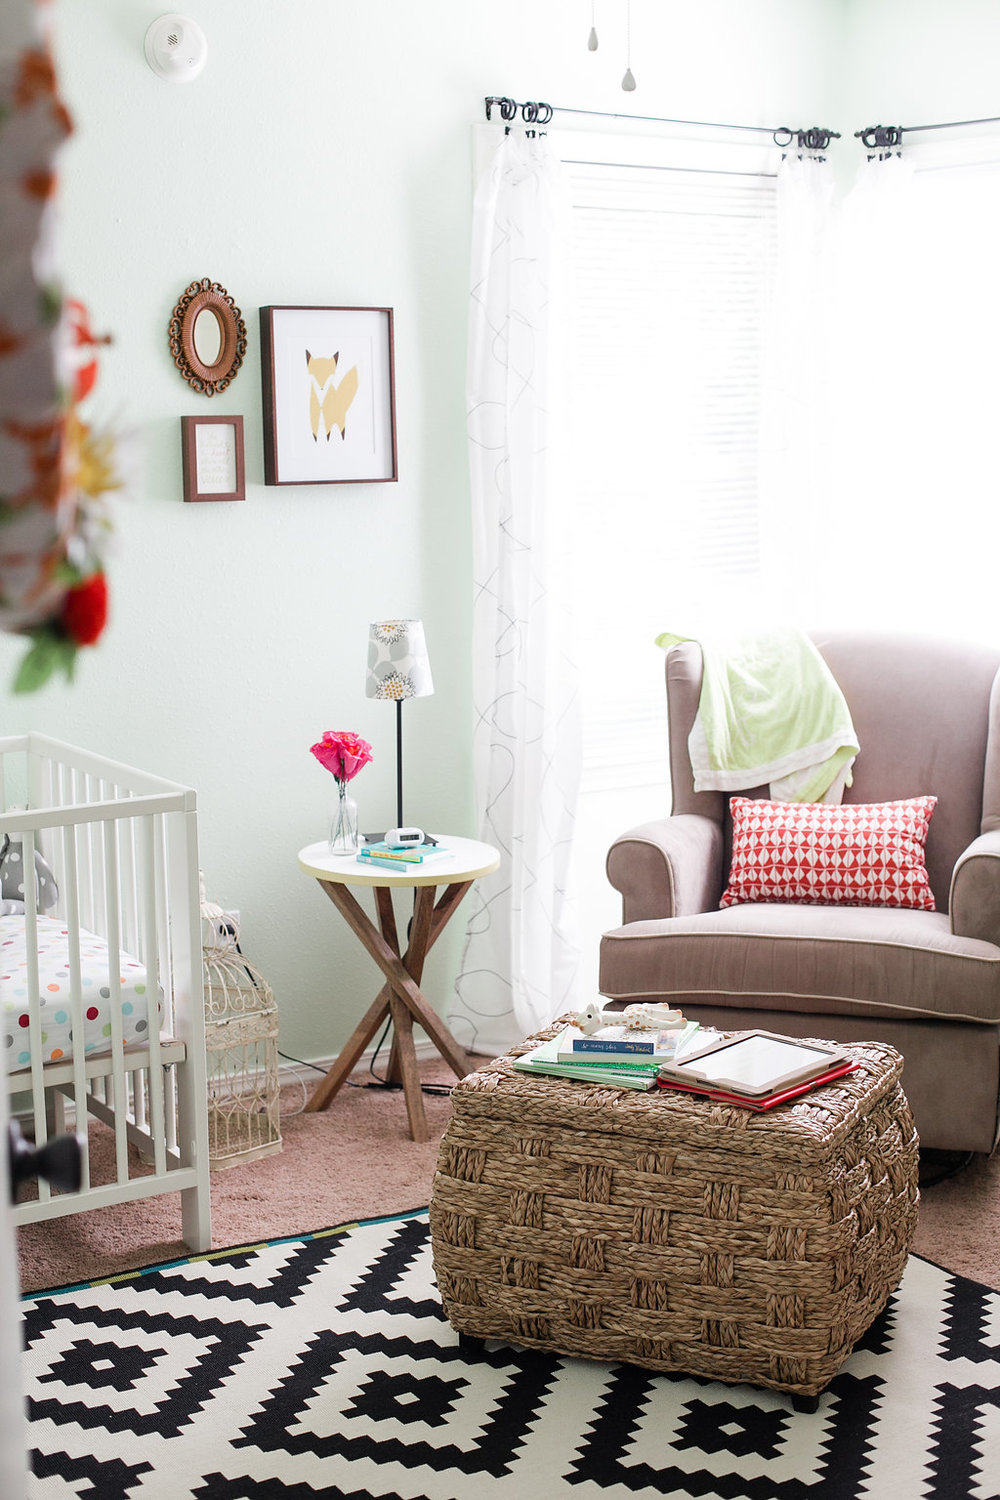 Paper + Oats | Create a space you love for your kids | Photography by Salt & Sky Studios